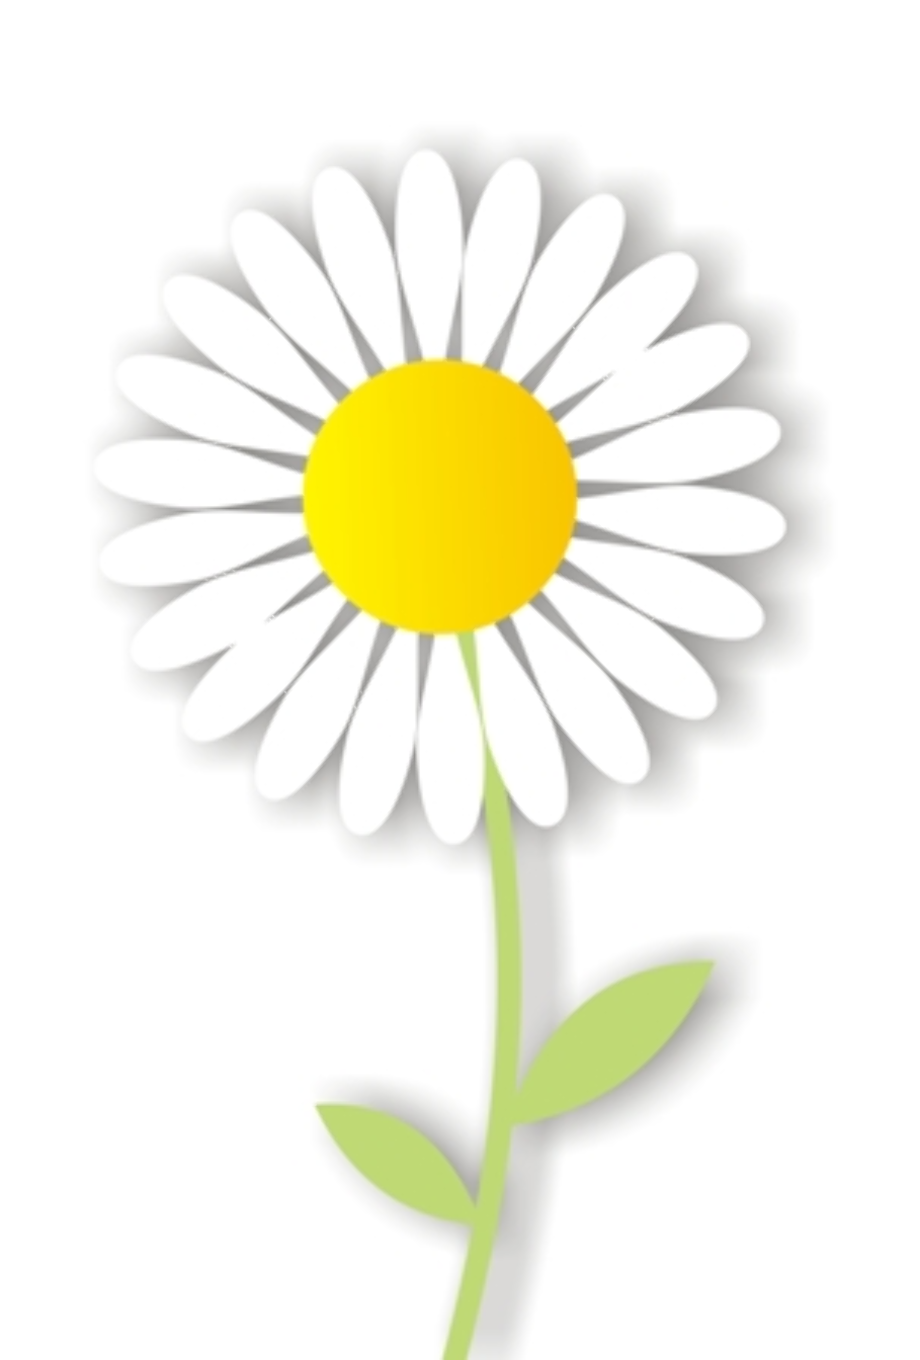 Download High Quality daisy clipart light yellow ... (920 x 1360 Pixel)